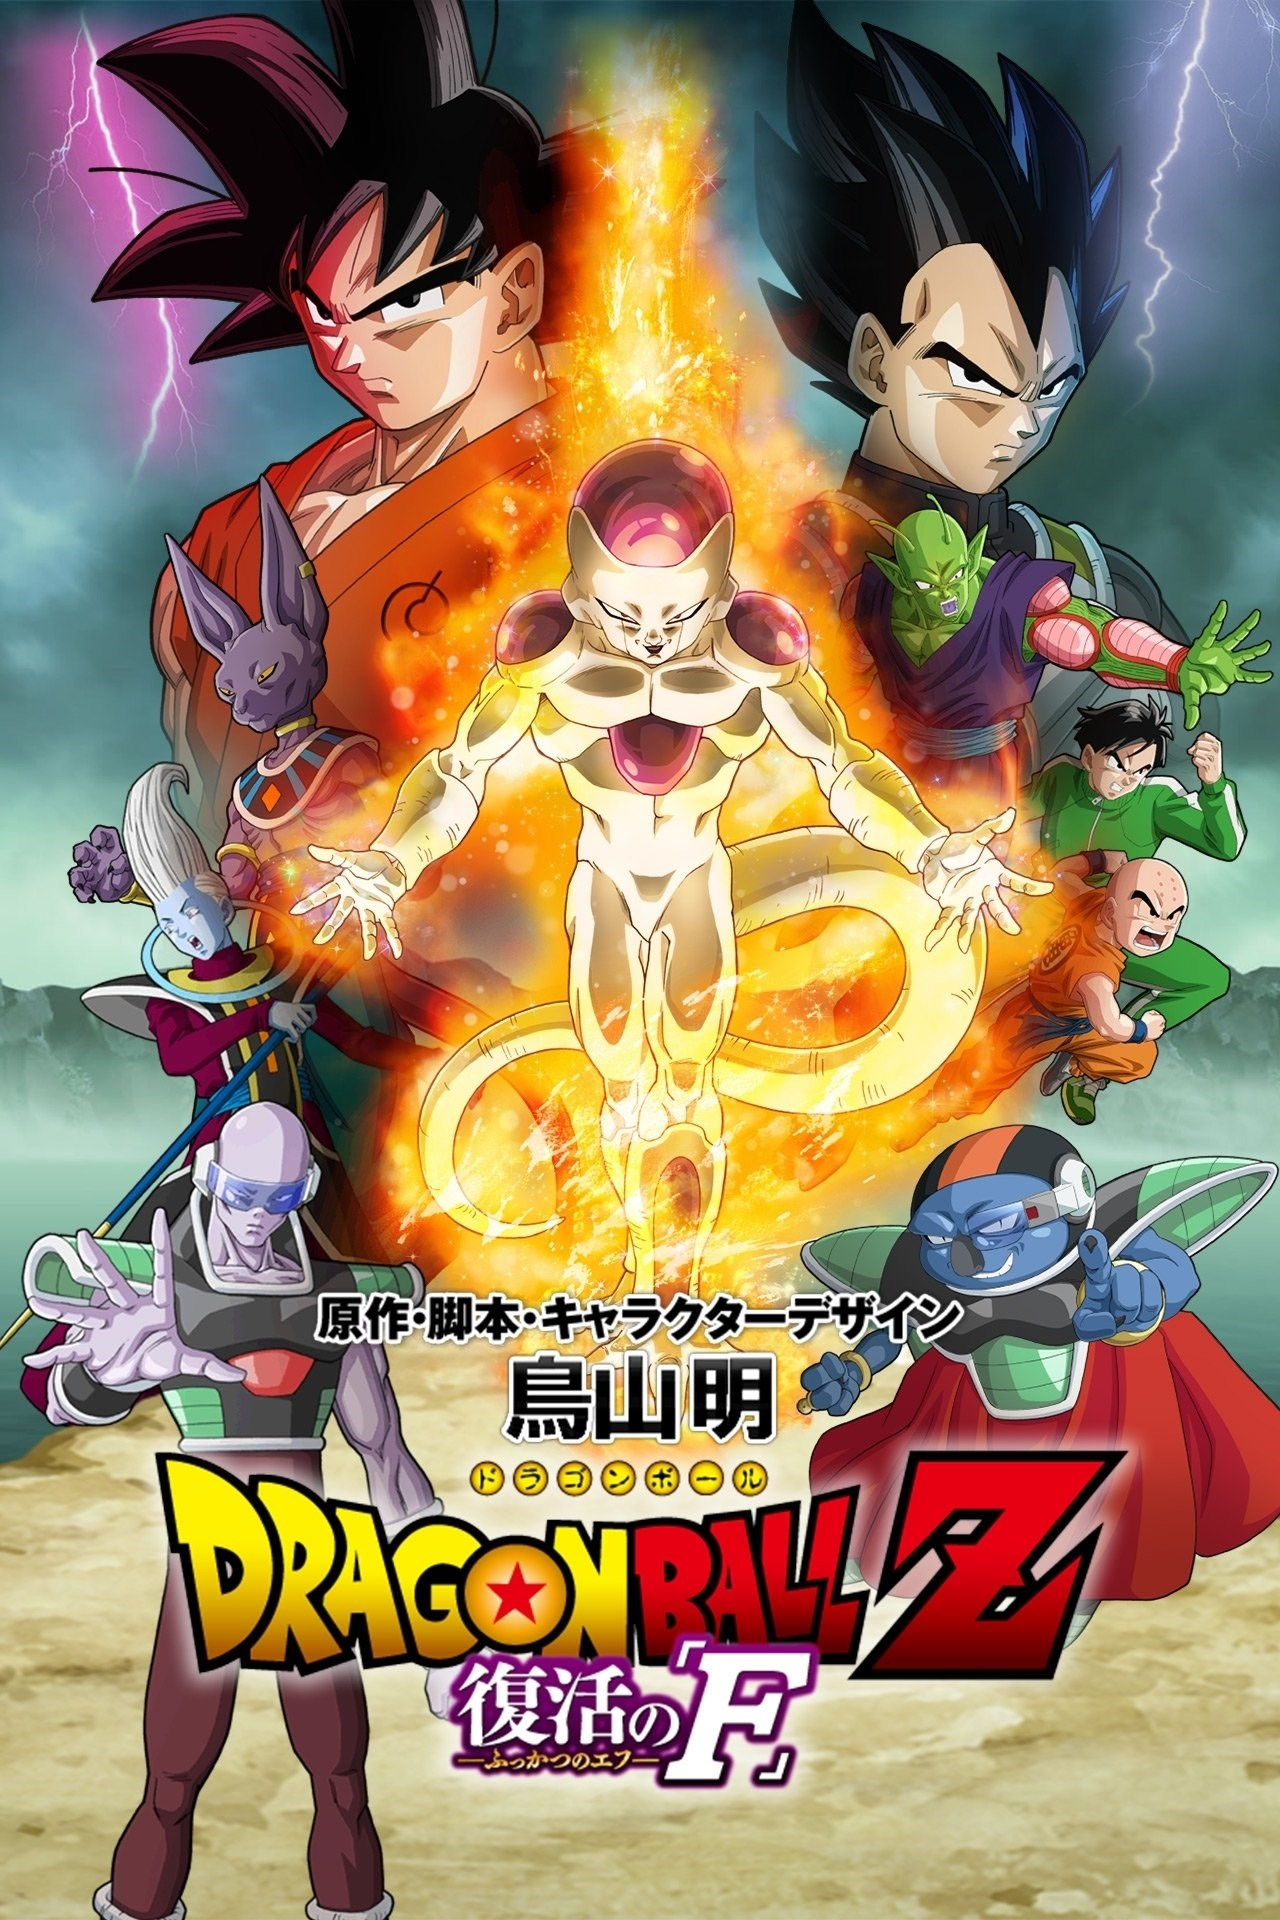 Dragon Ball Resurrection F